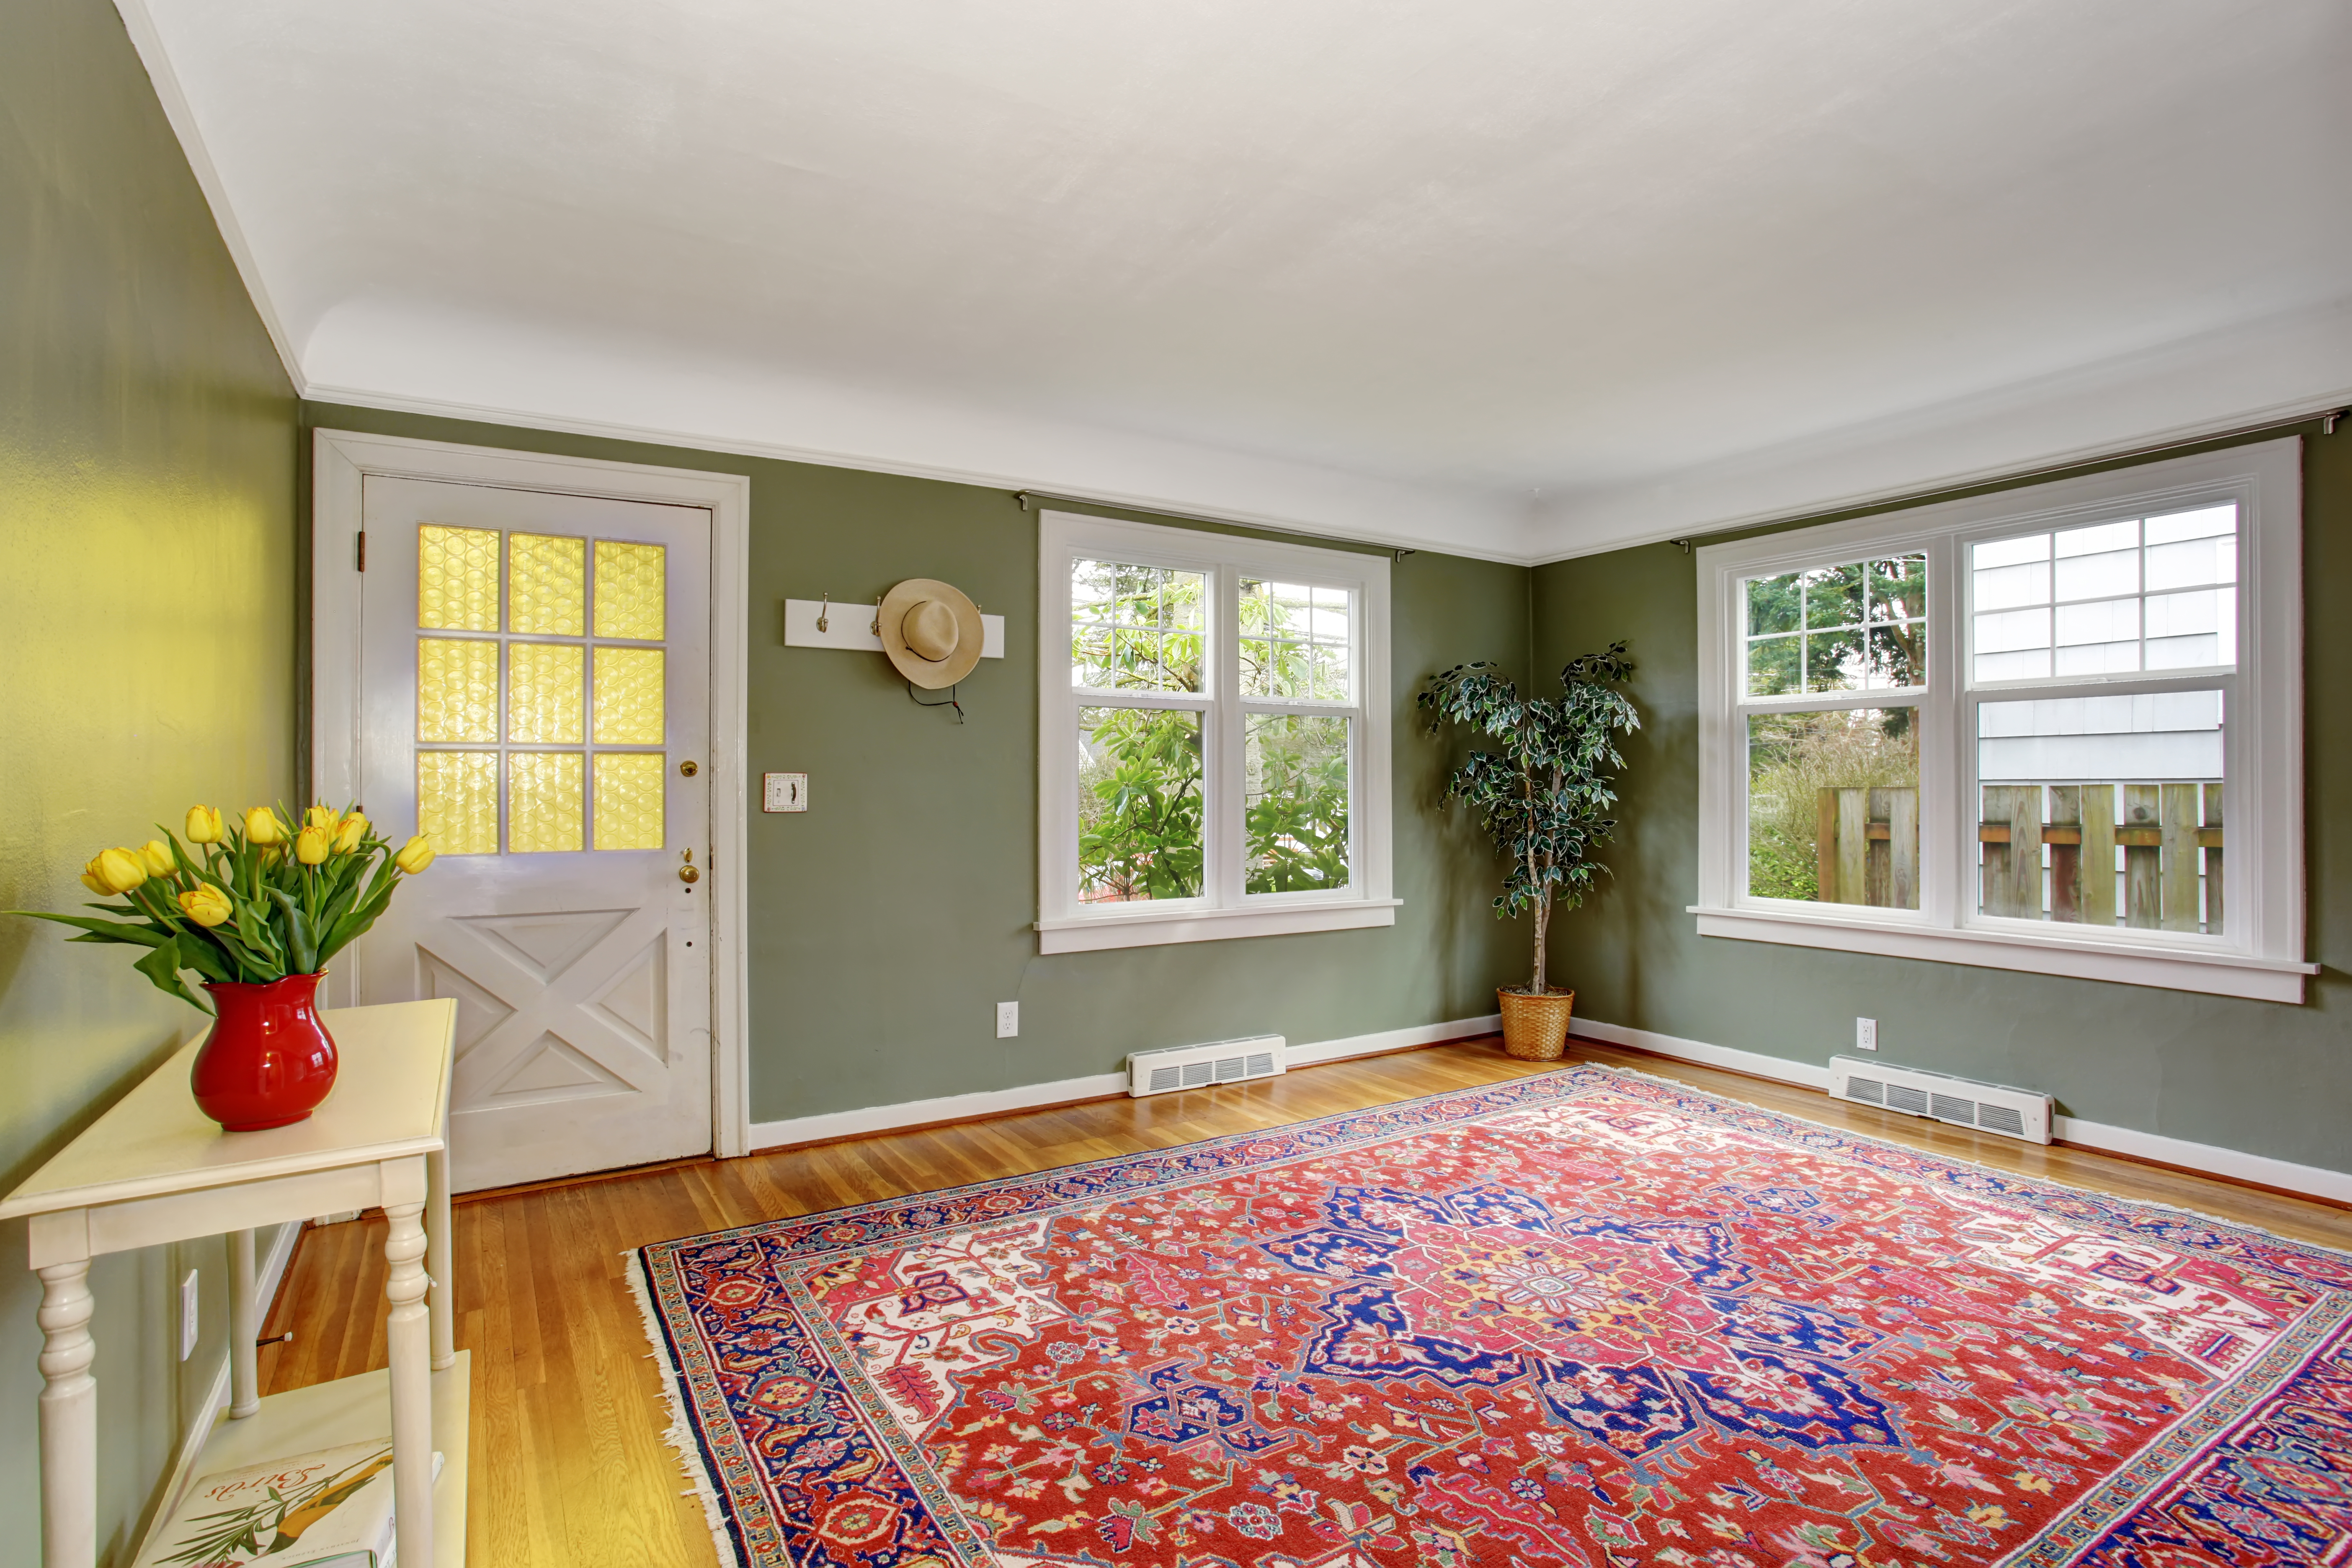 How To Get Rid Of Yellow Stains From A Rug On Flooring | Hunker